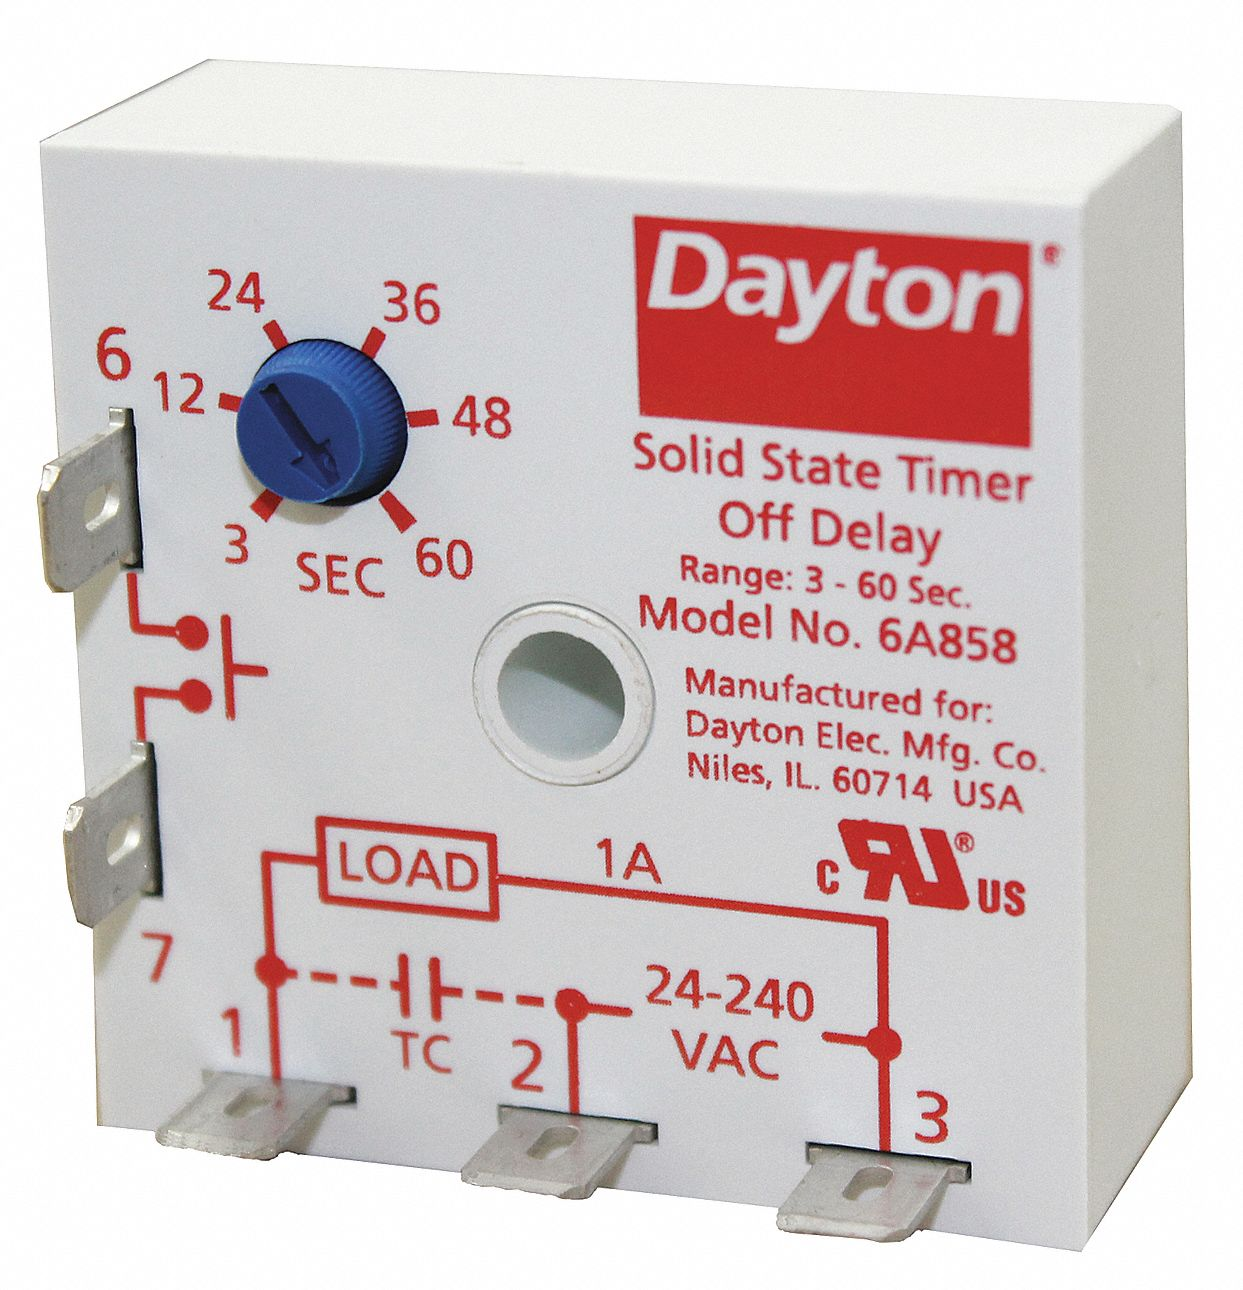 hight resolution of dayton single function encapsulated timing relay 24 to 240vac mounting surface spst no 6a858 6a858 grainger